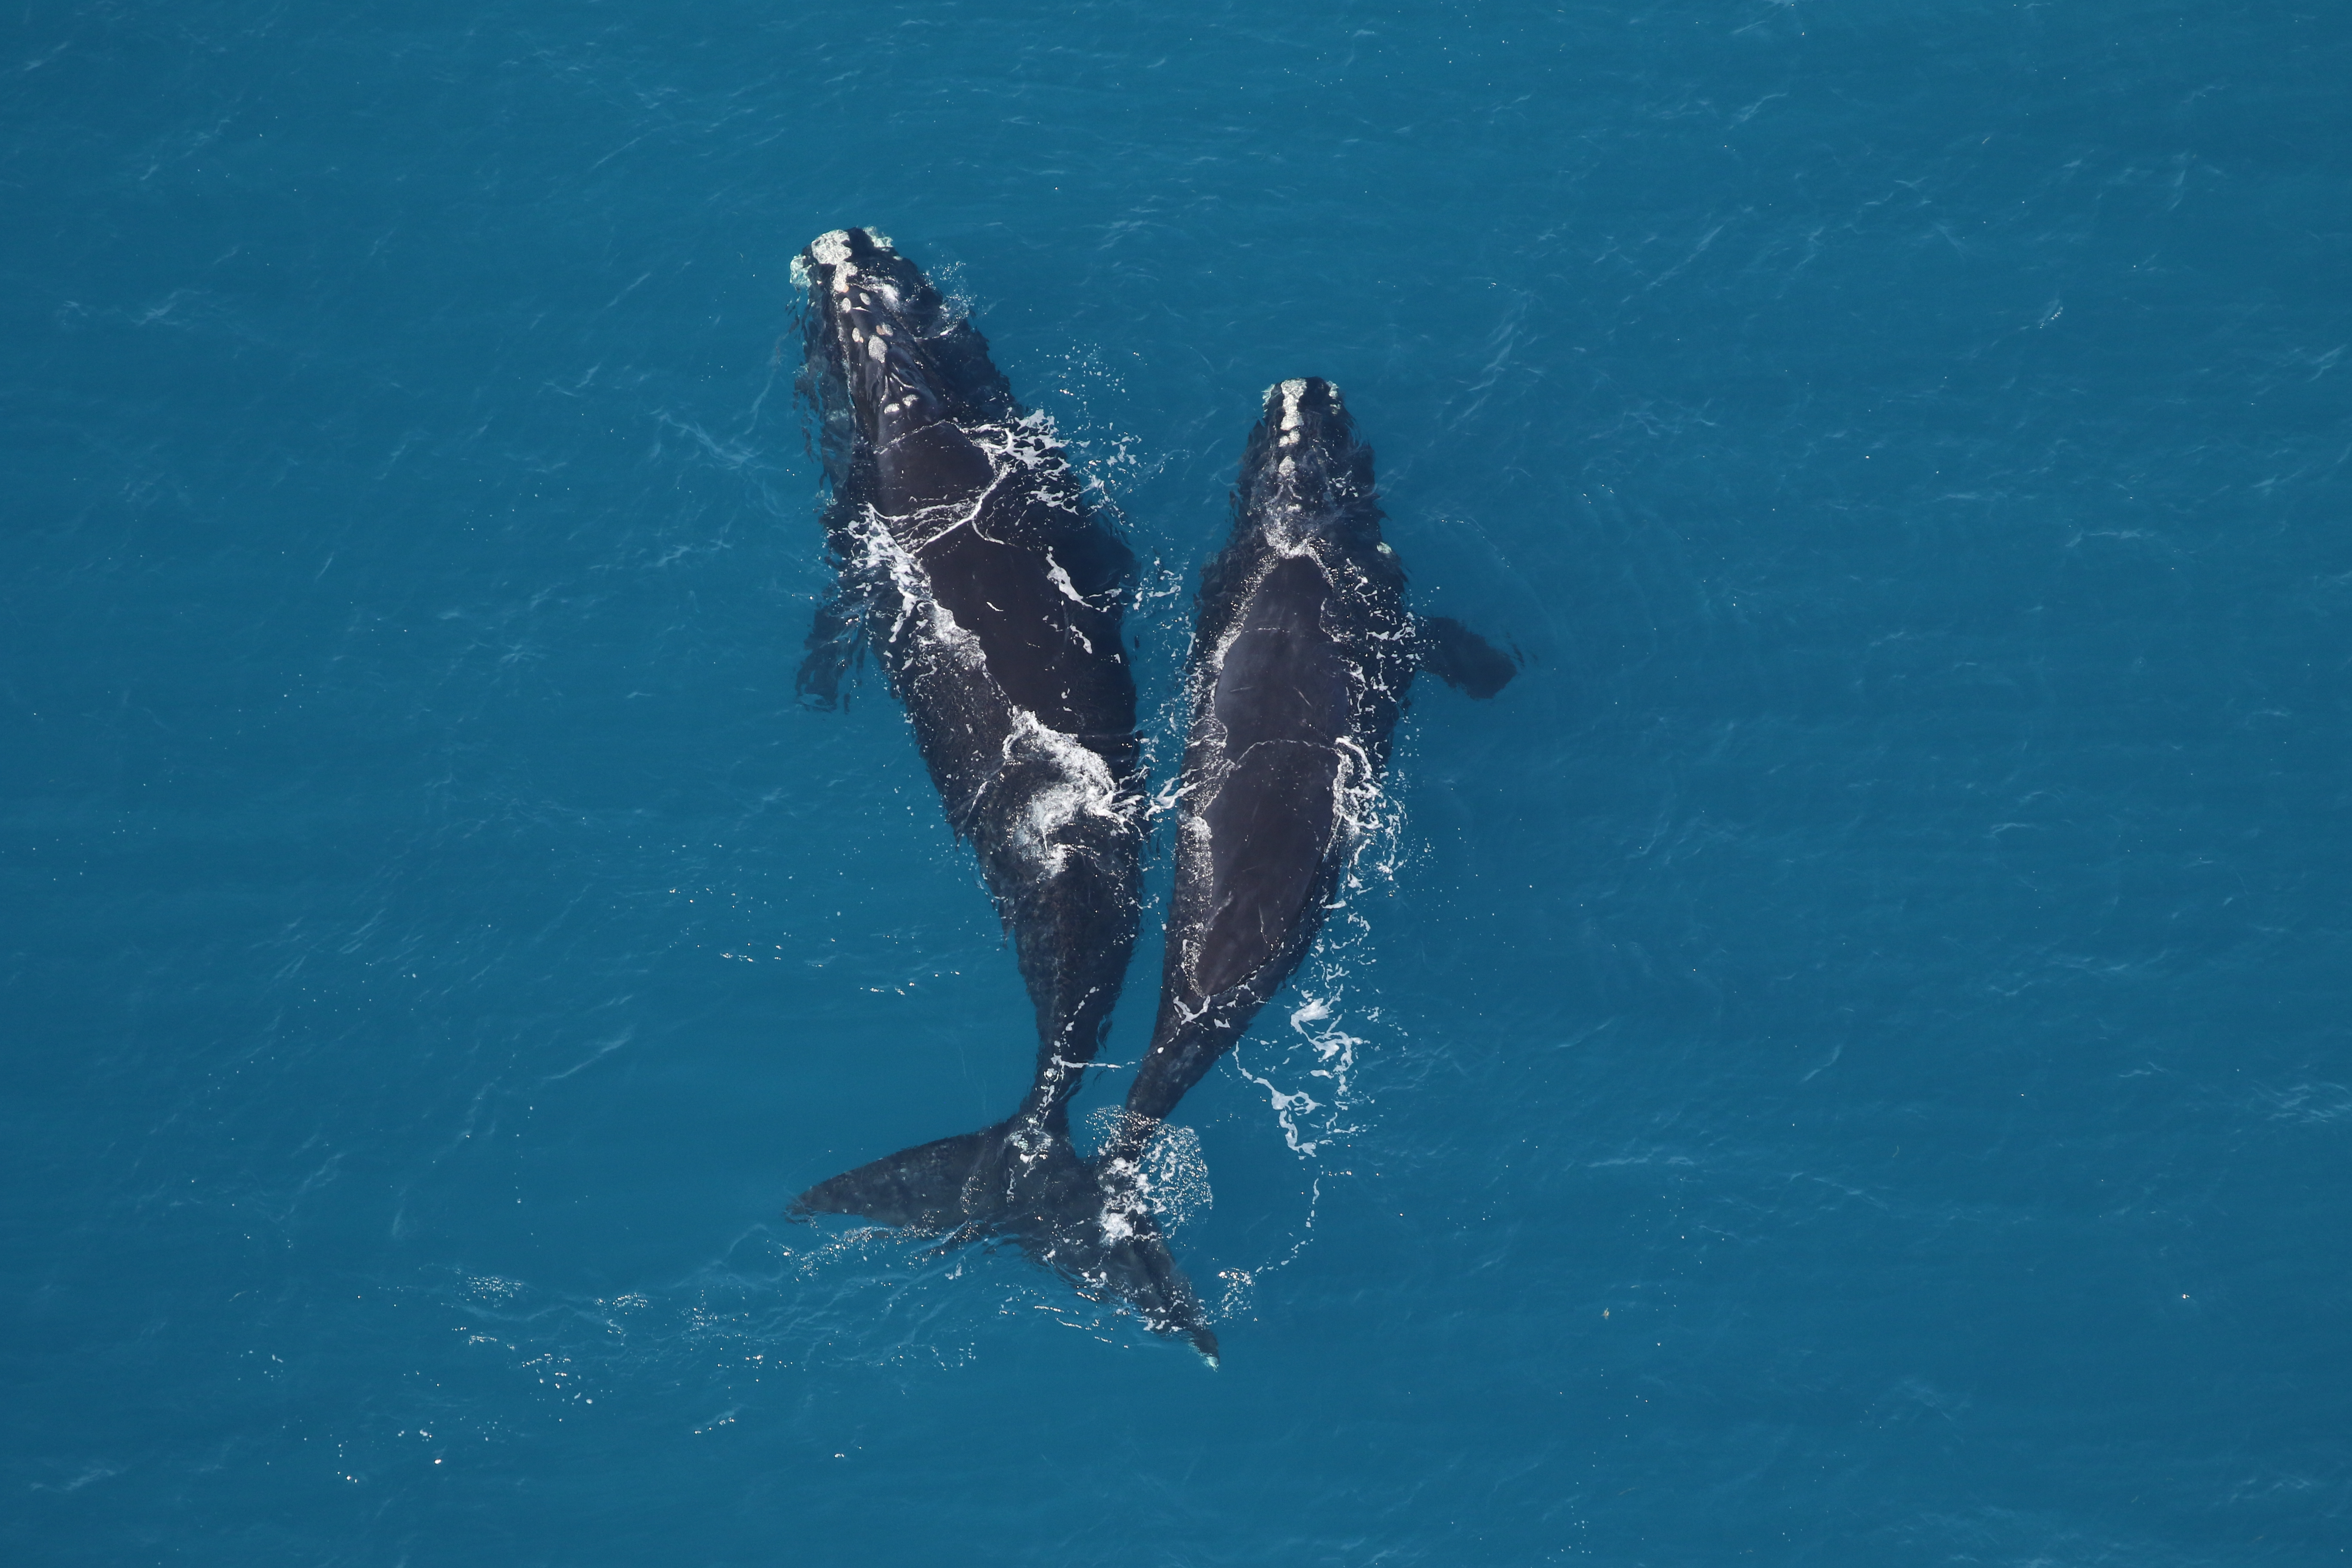 An adult right whale and a juvenile off Georgia's coast (Sea to Shore Alliance_NOAA permit 20556)